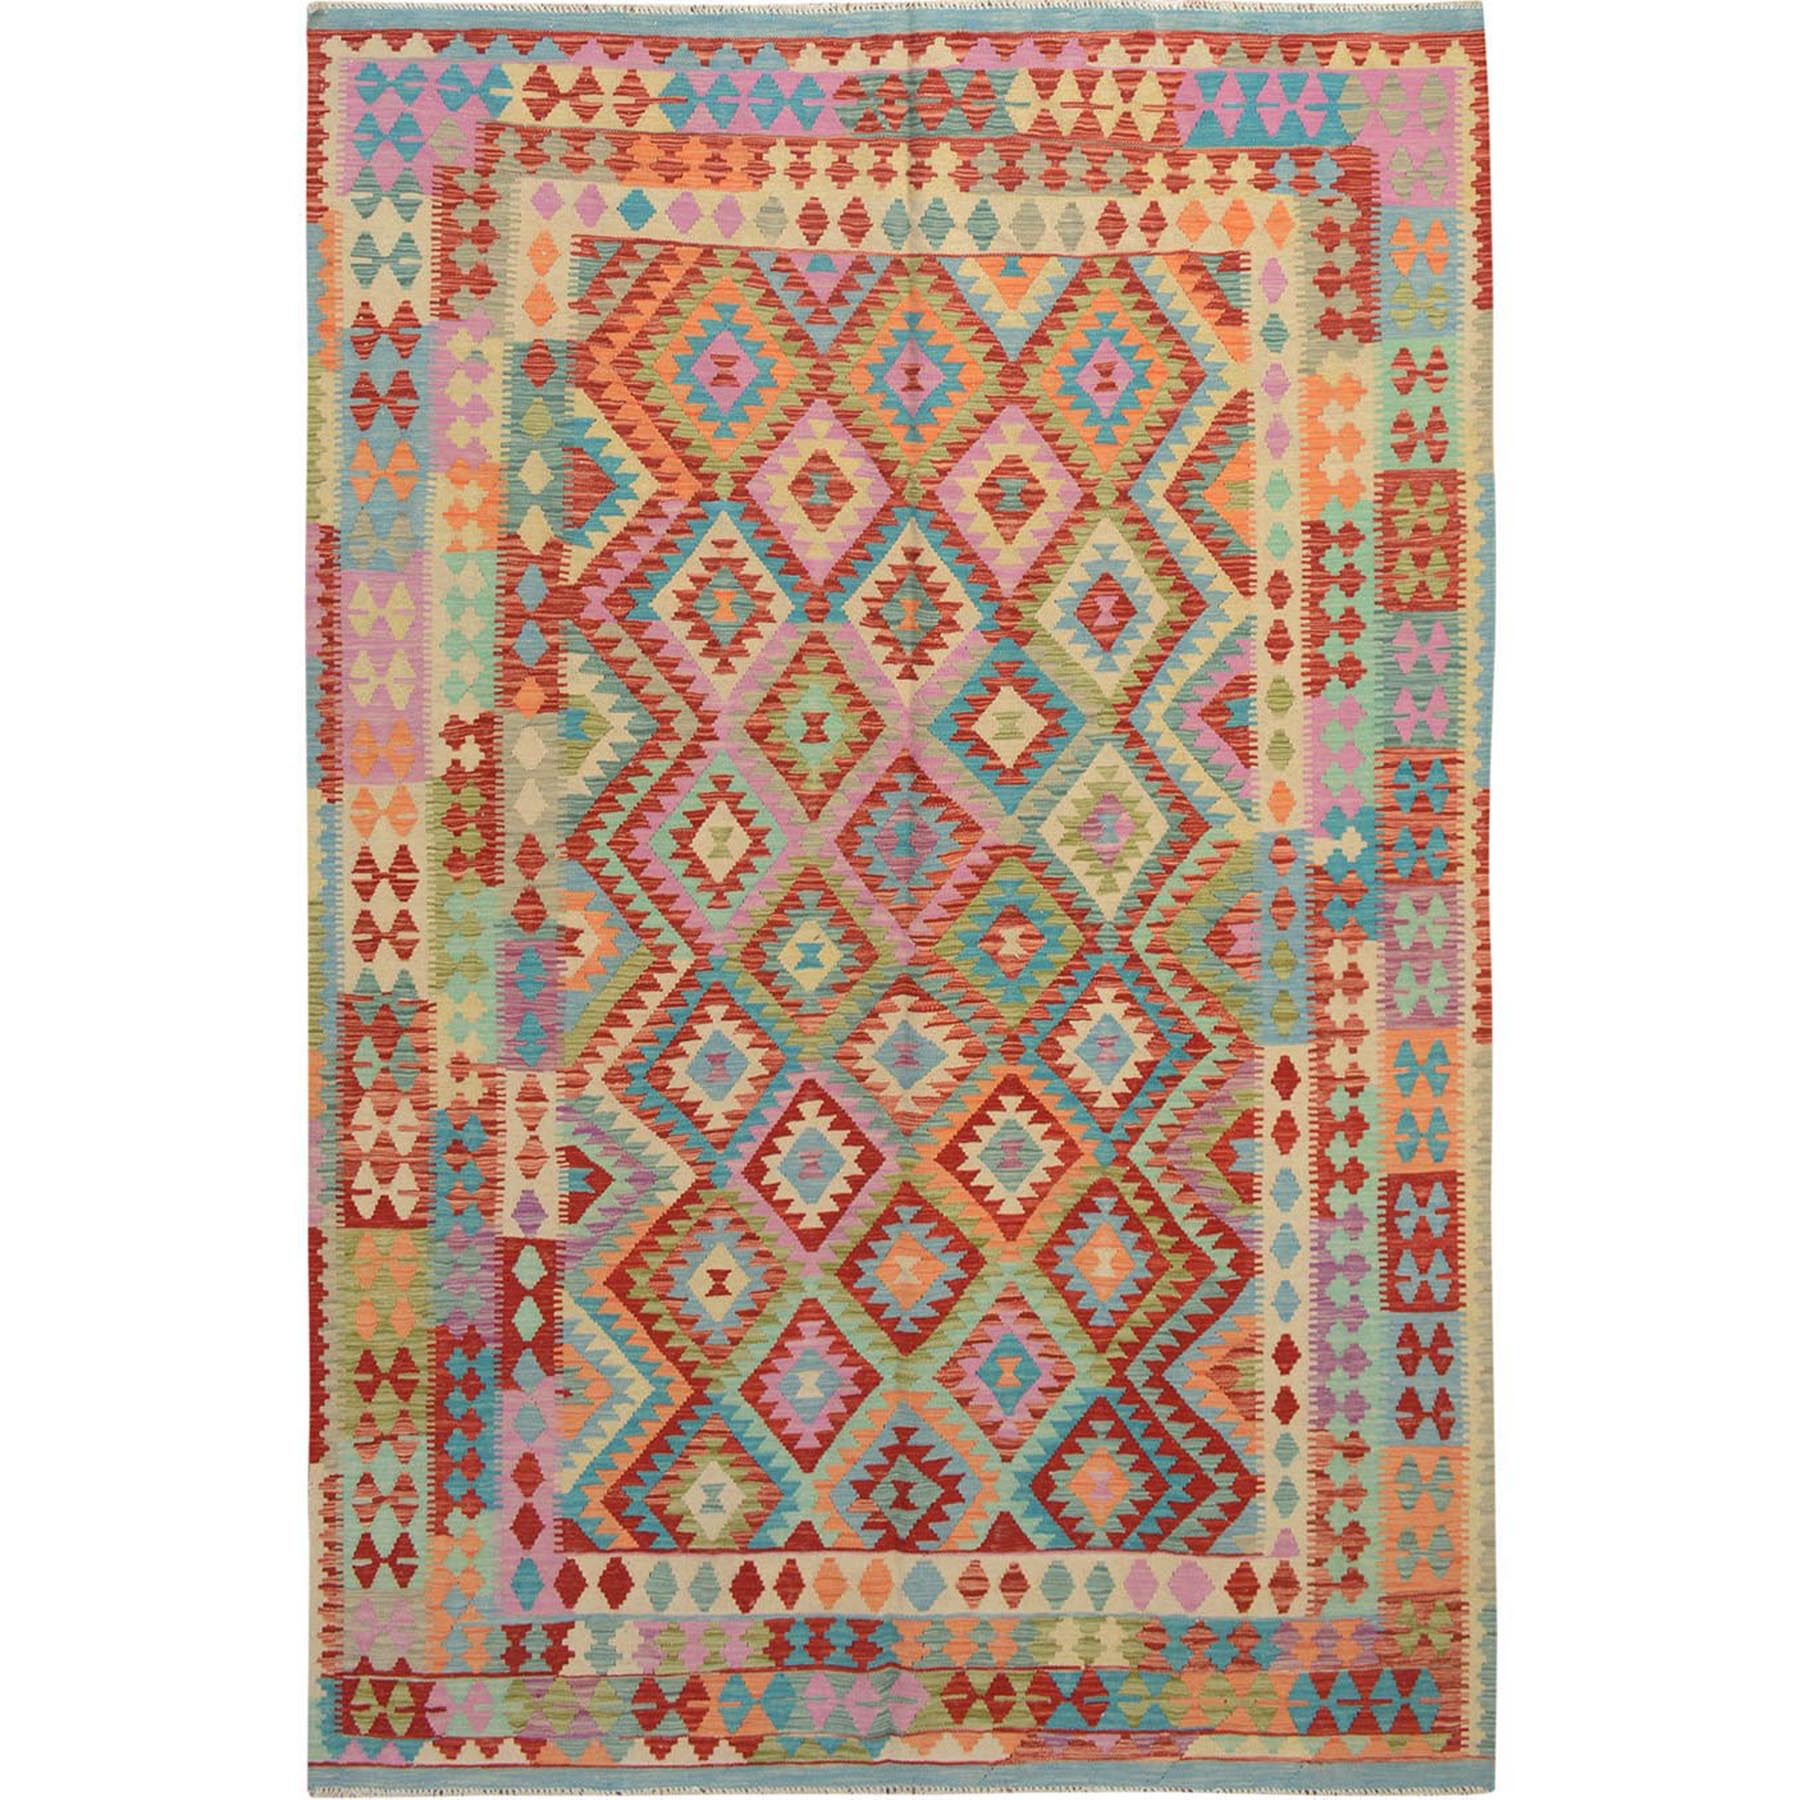 "6'6""x9'7"" Colorful Reversible Flat weave Afghan Kilim Pure Wool Hand Woven Oriental Rug"